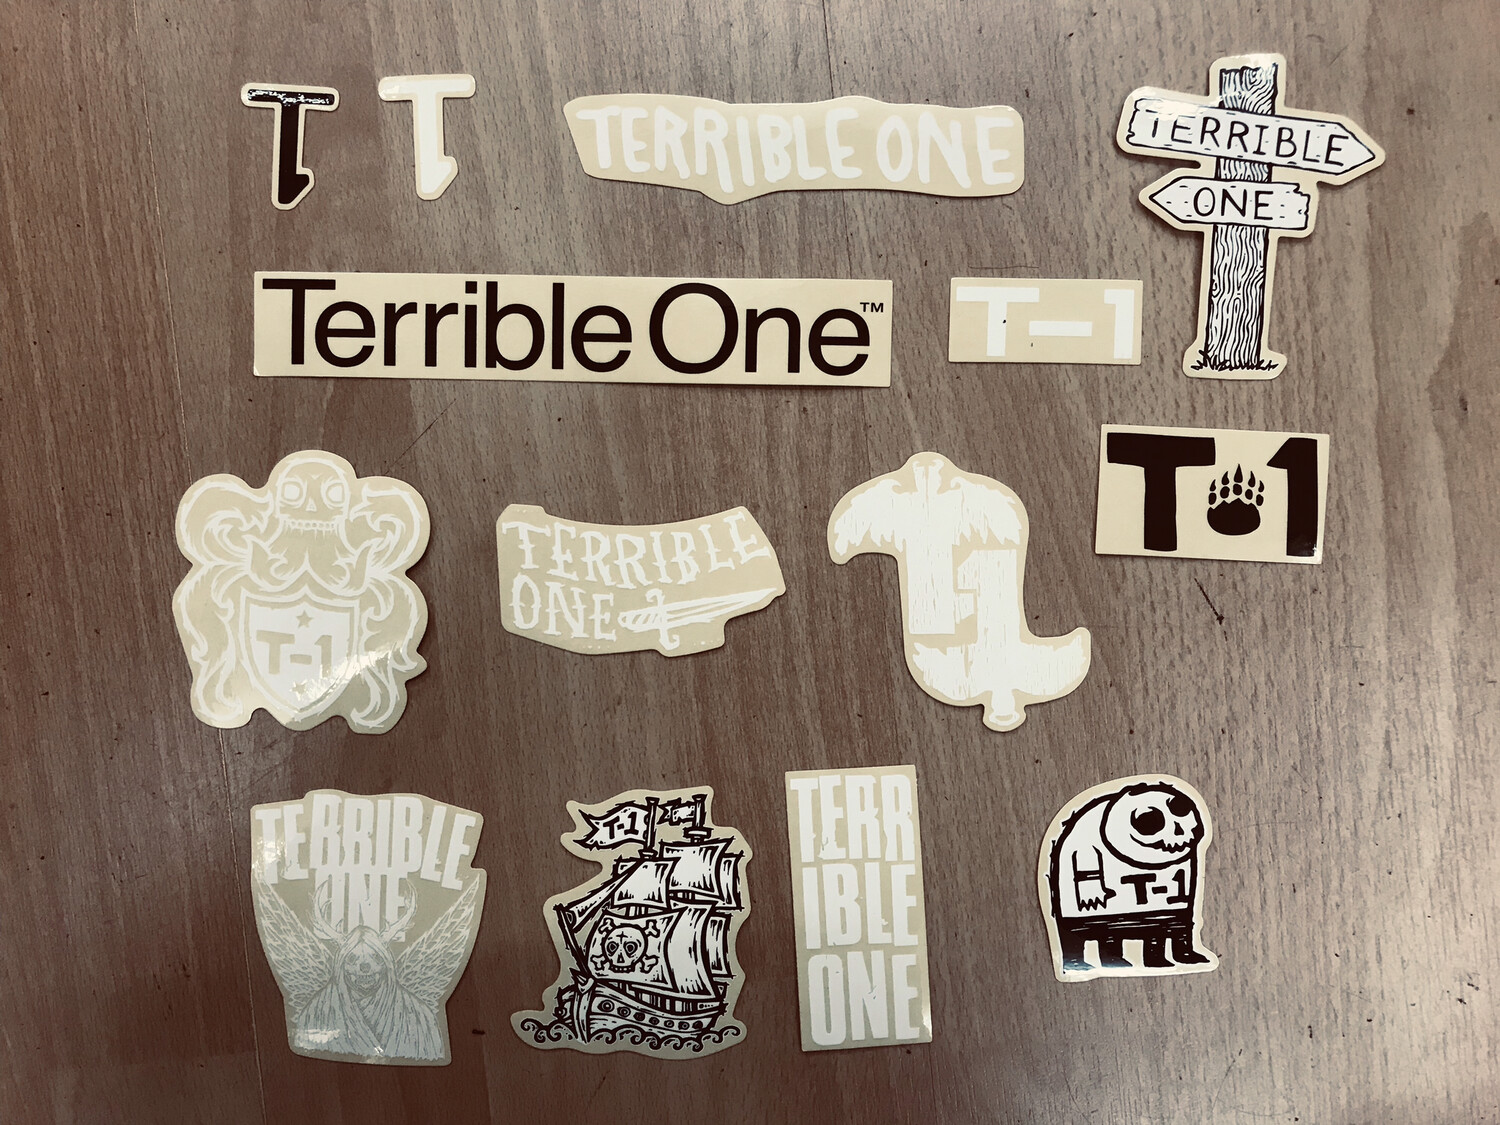 terrible one sticker packs